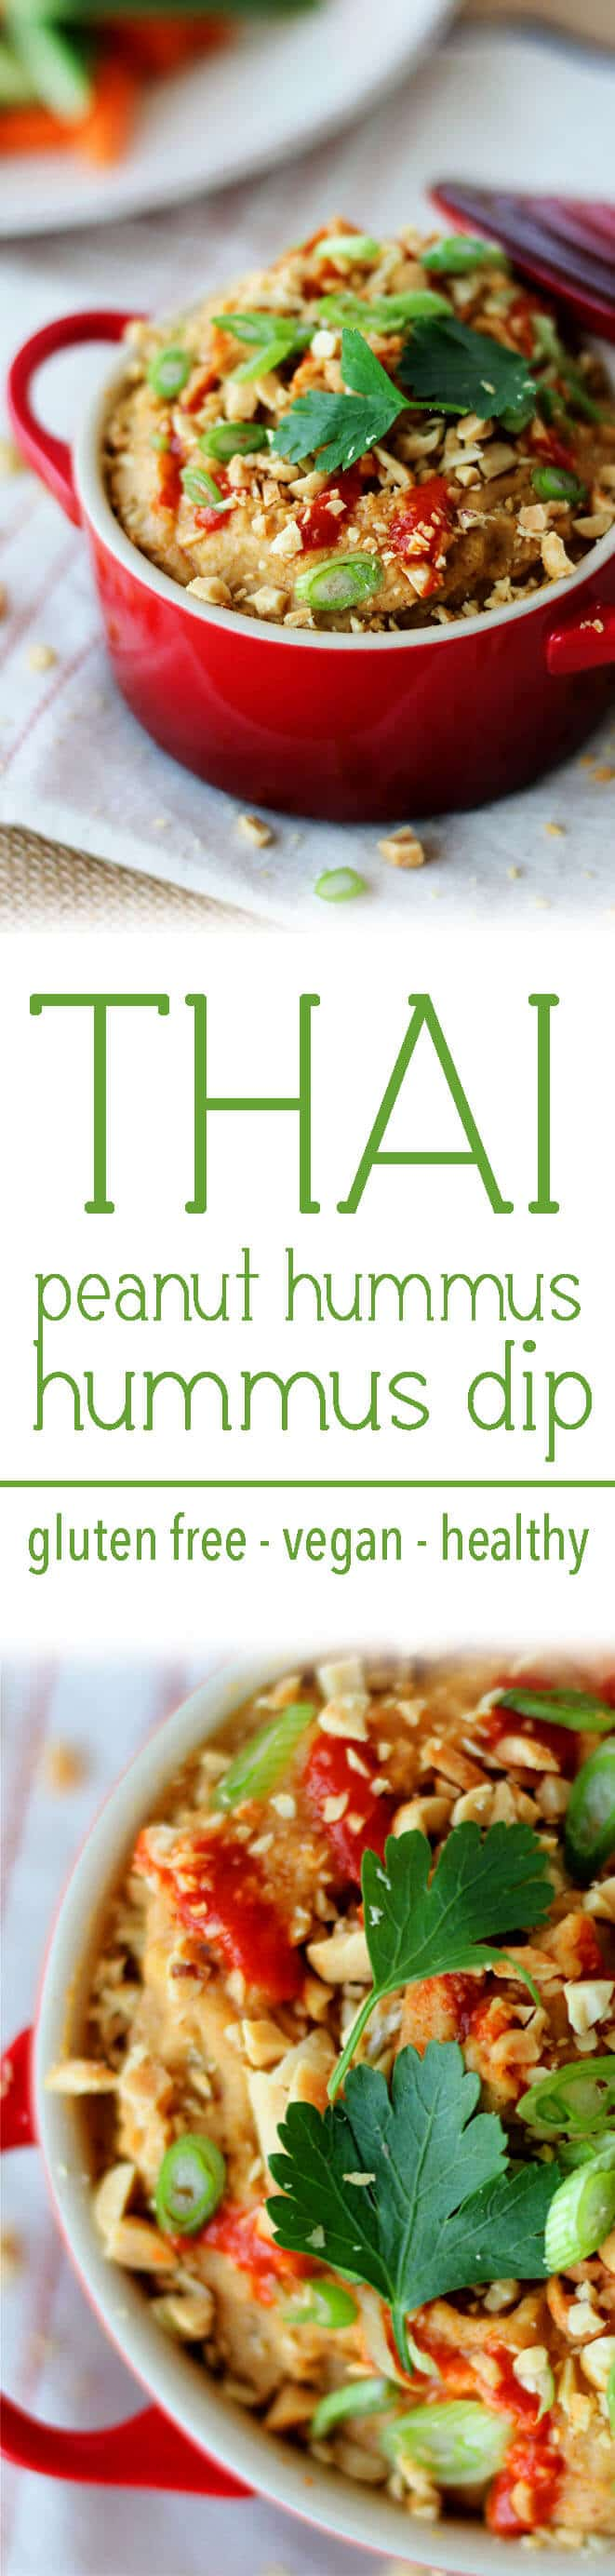 "A pinterest image of a dip in a bowl with the text overlay ""THAI peanut hummus hummus dip gluten free - vegan - healthy.\"""